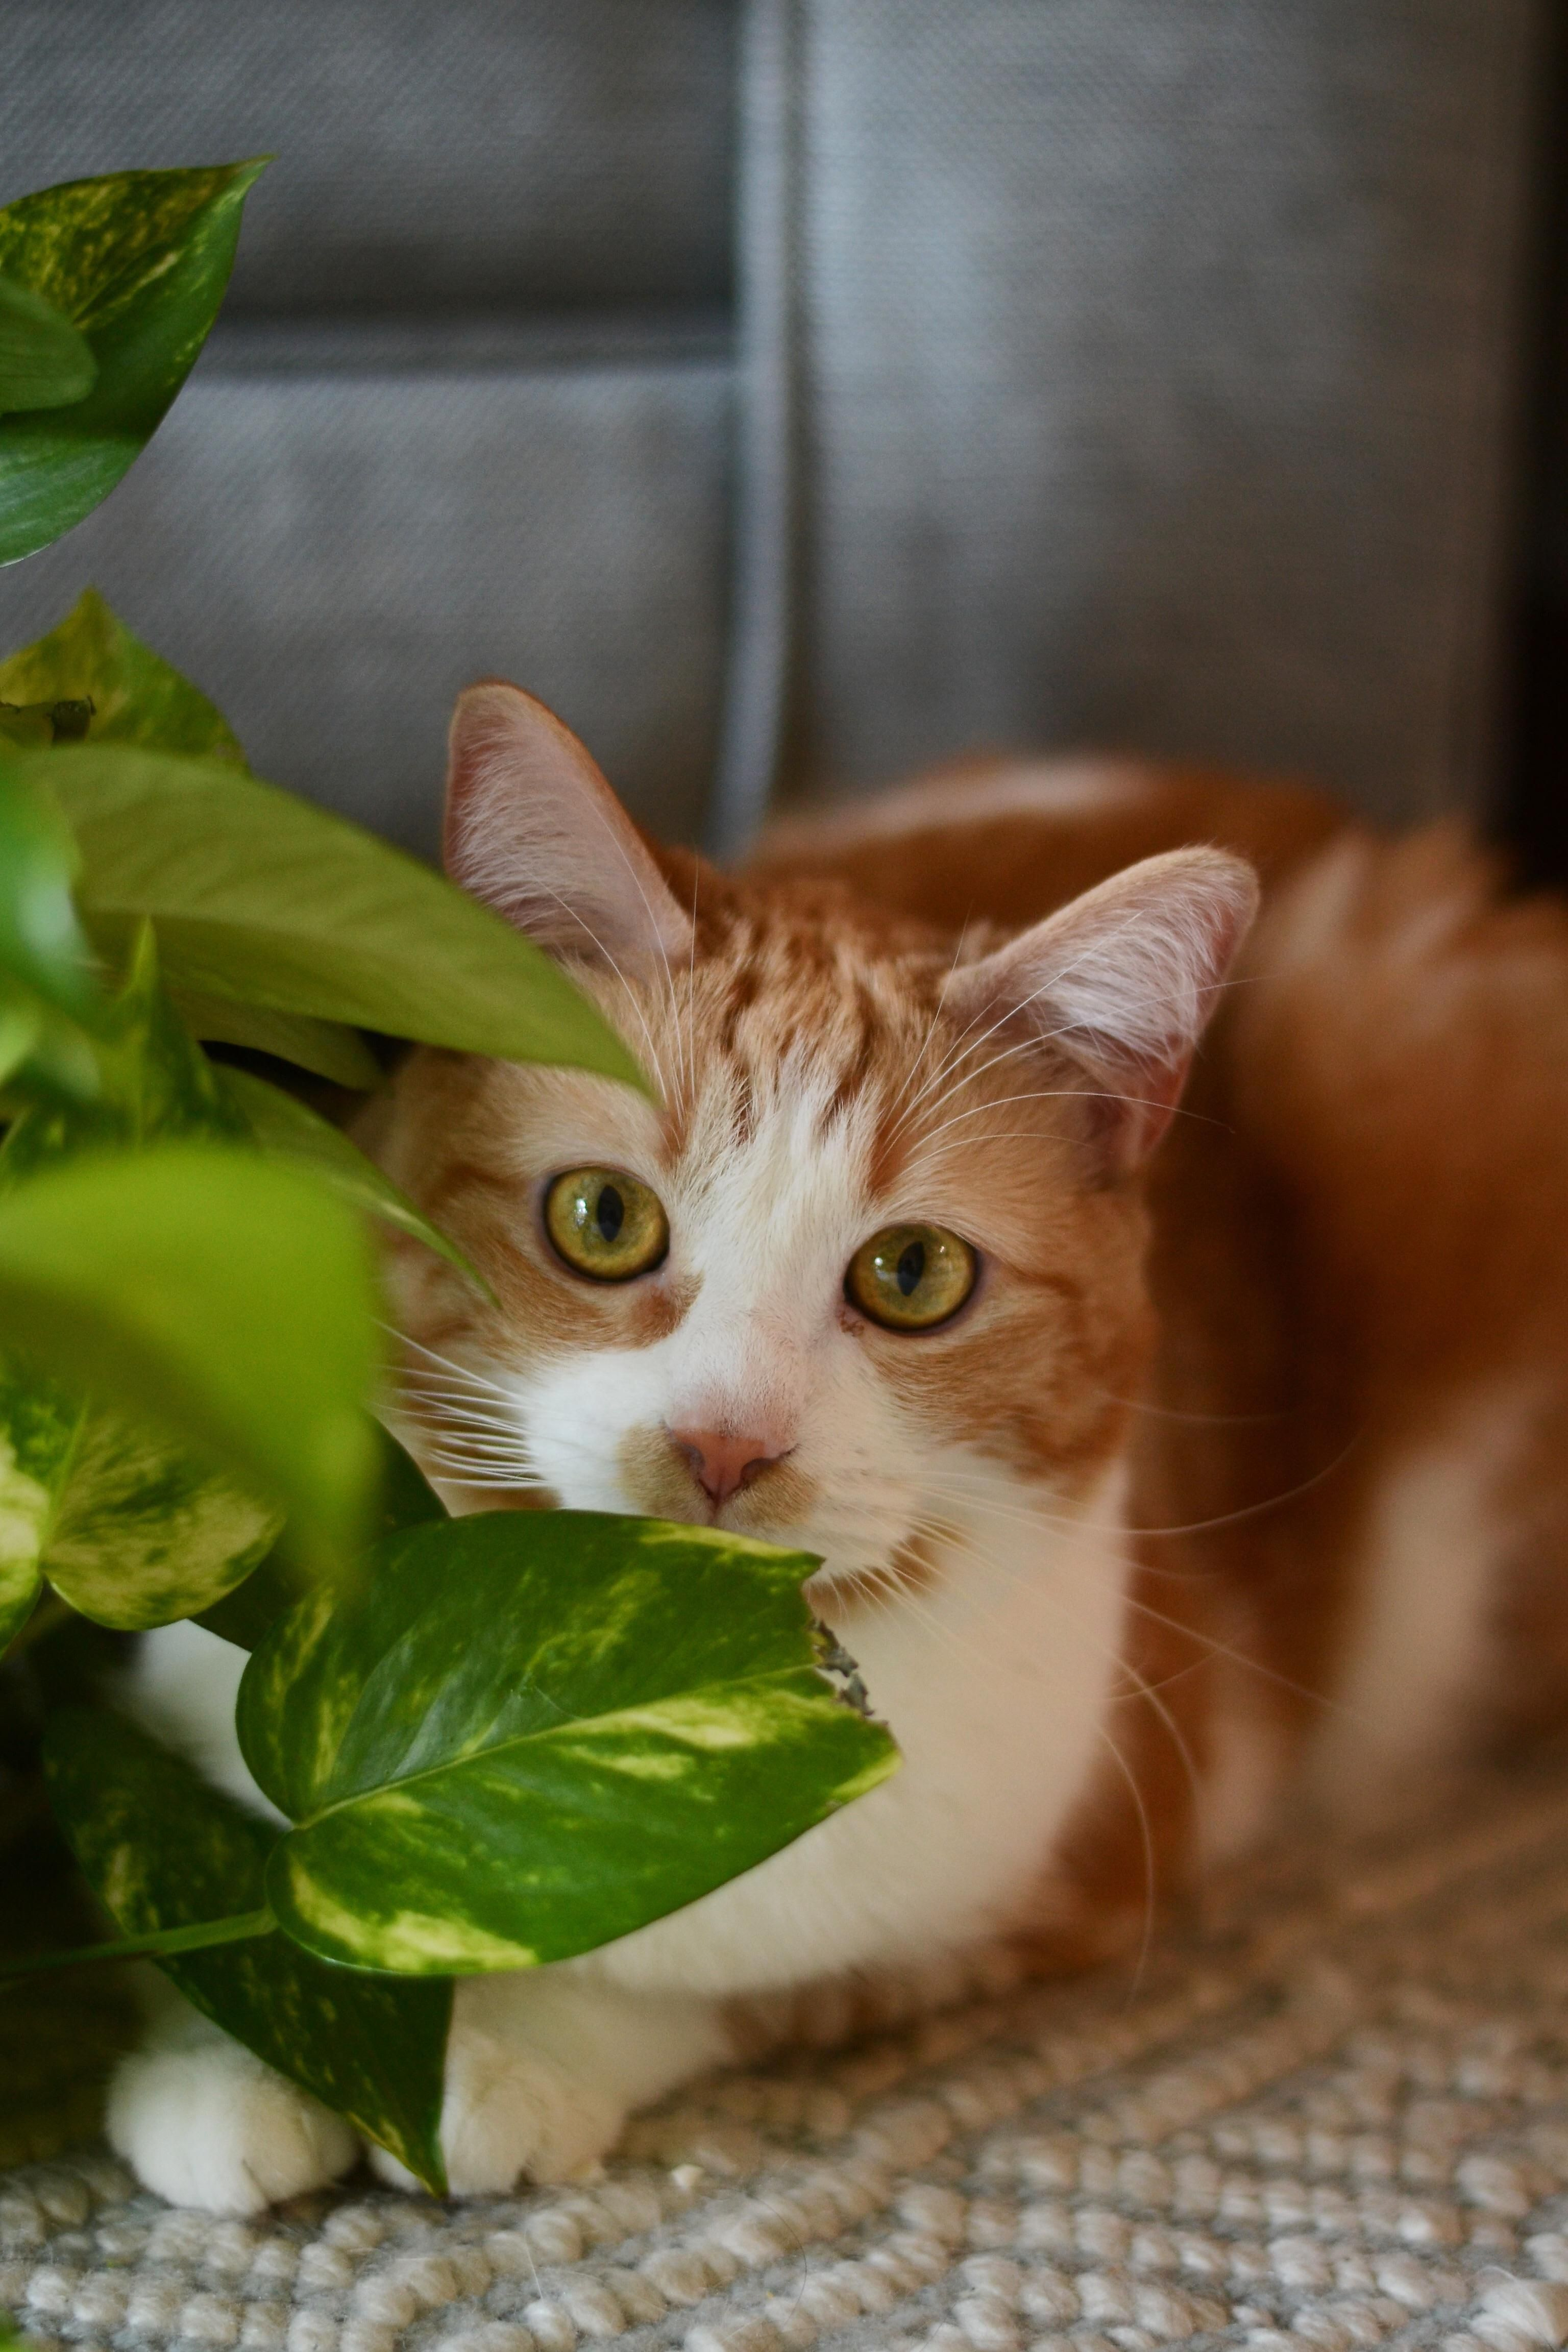 Did A Little Photoshoot With My Cat Potatohttps I Redd It Hg5dnbbn59b21 Jpg Cats Photoshoot Cute Pictures